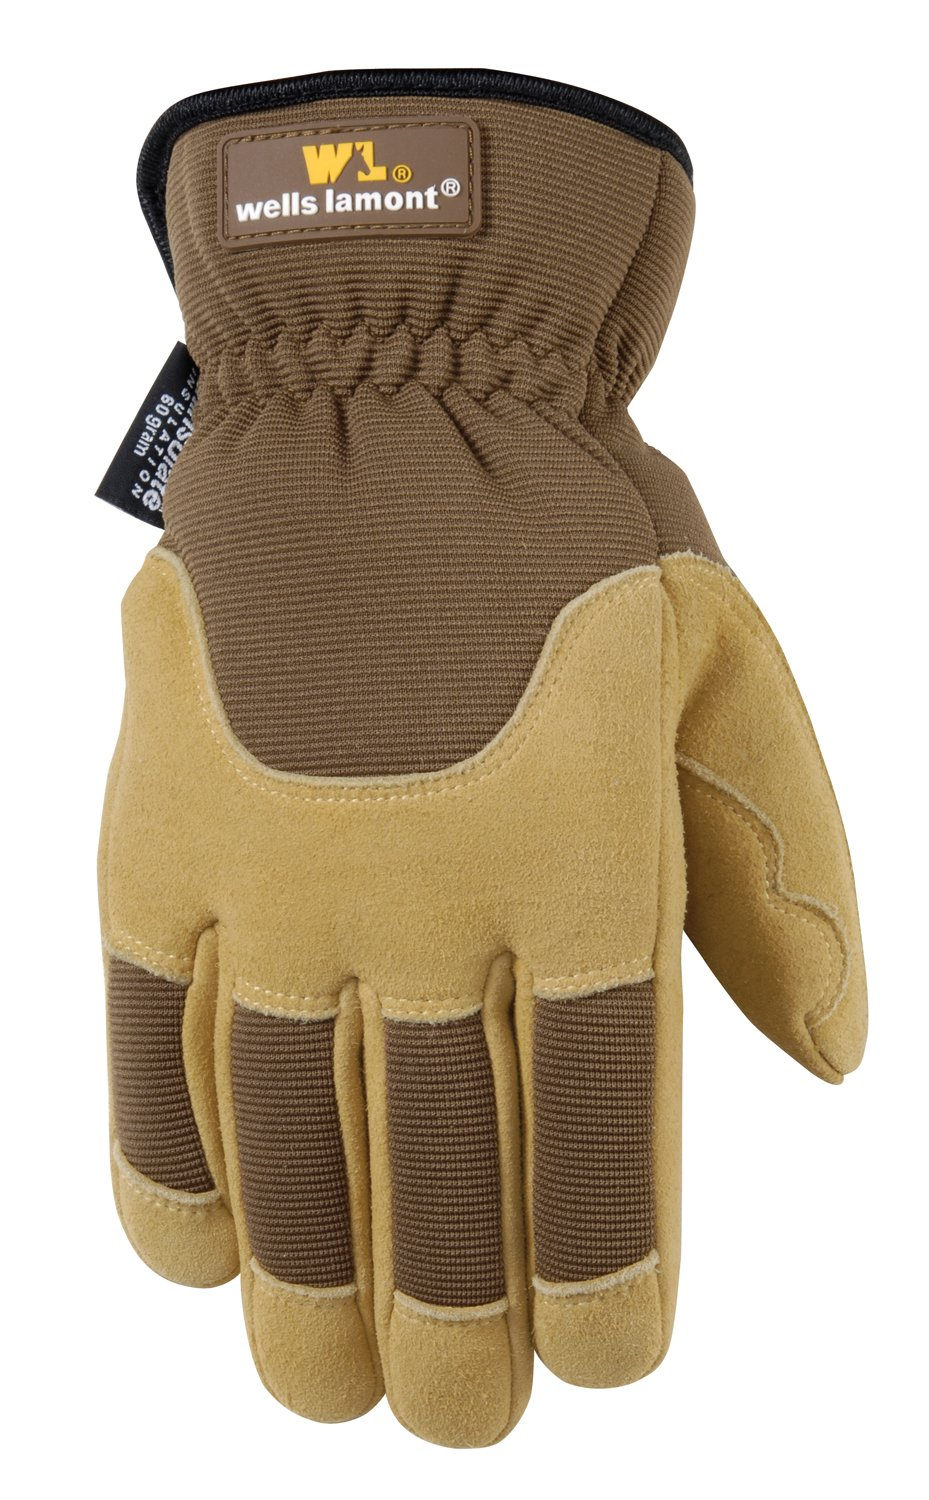 Insulated leather work gloves amazon - Wells Lamont Palm Leather Work Gloves Insulated Deerskin Suede Large 1092l Amazon Com